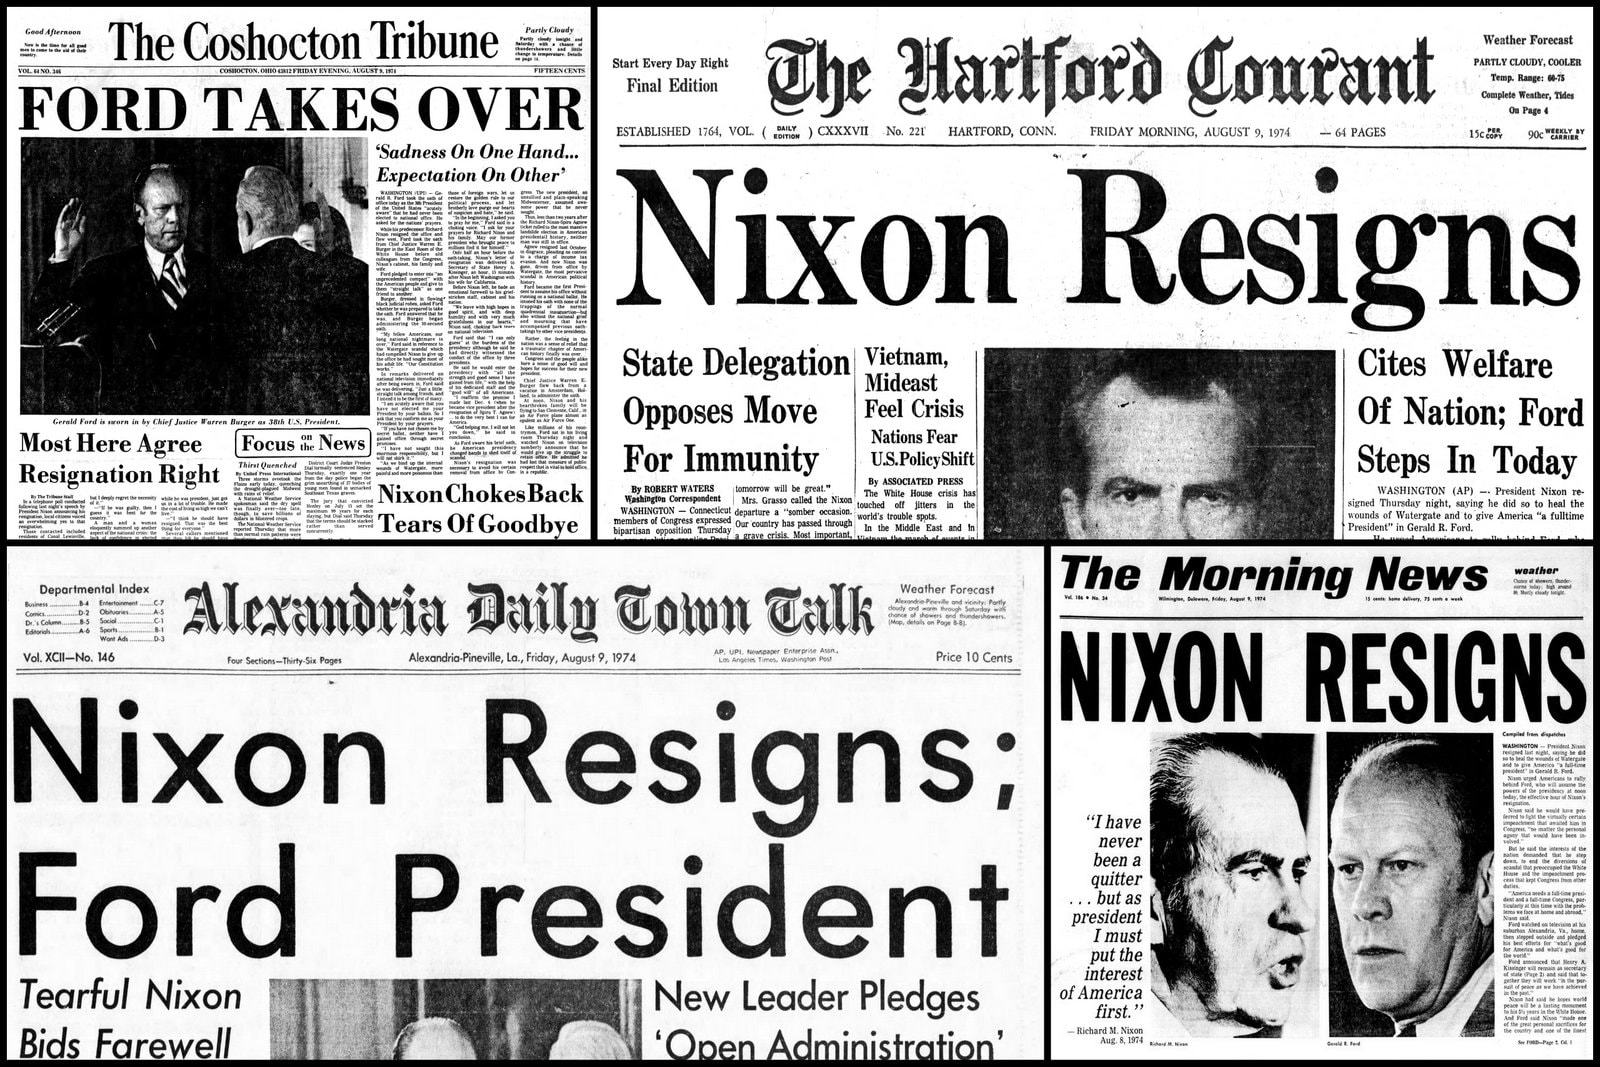 President Nixon's last 17 days in office Desperate search for a way out after Watergate (1974)